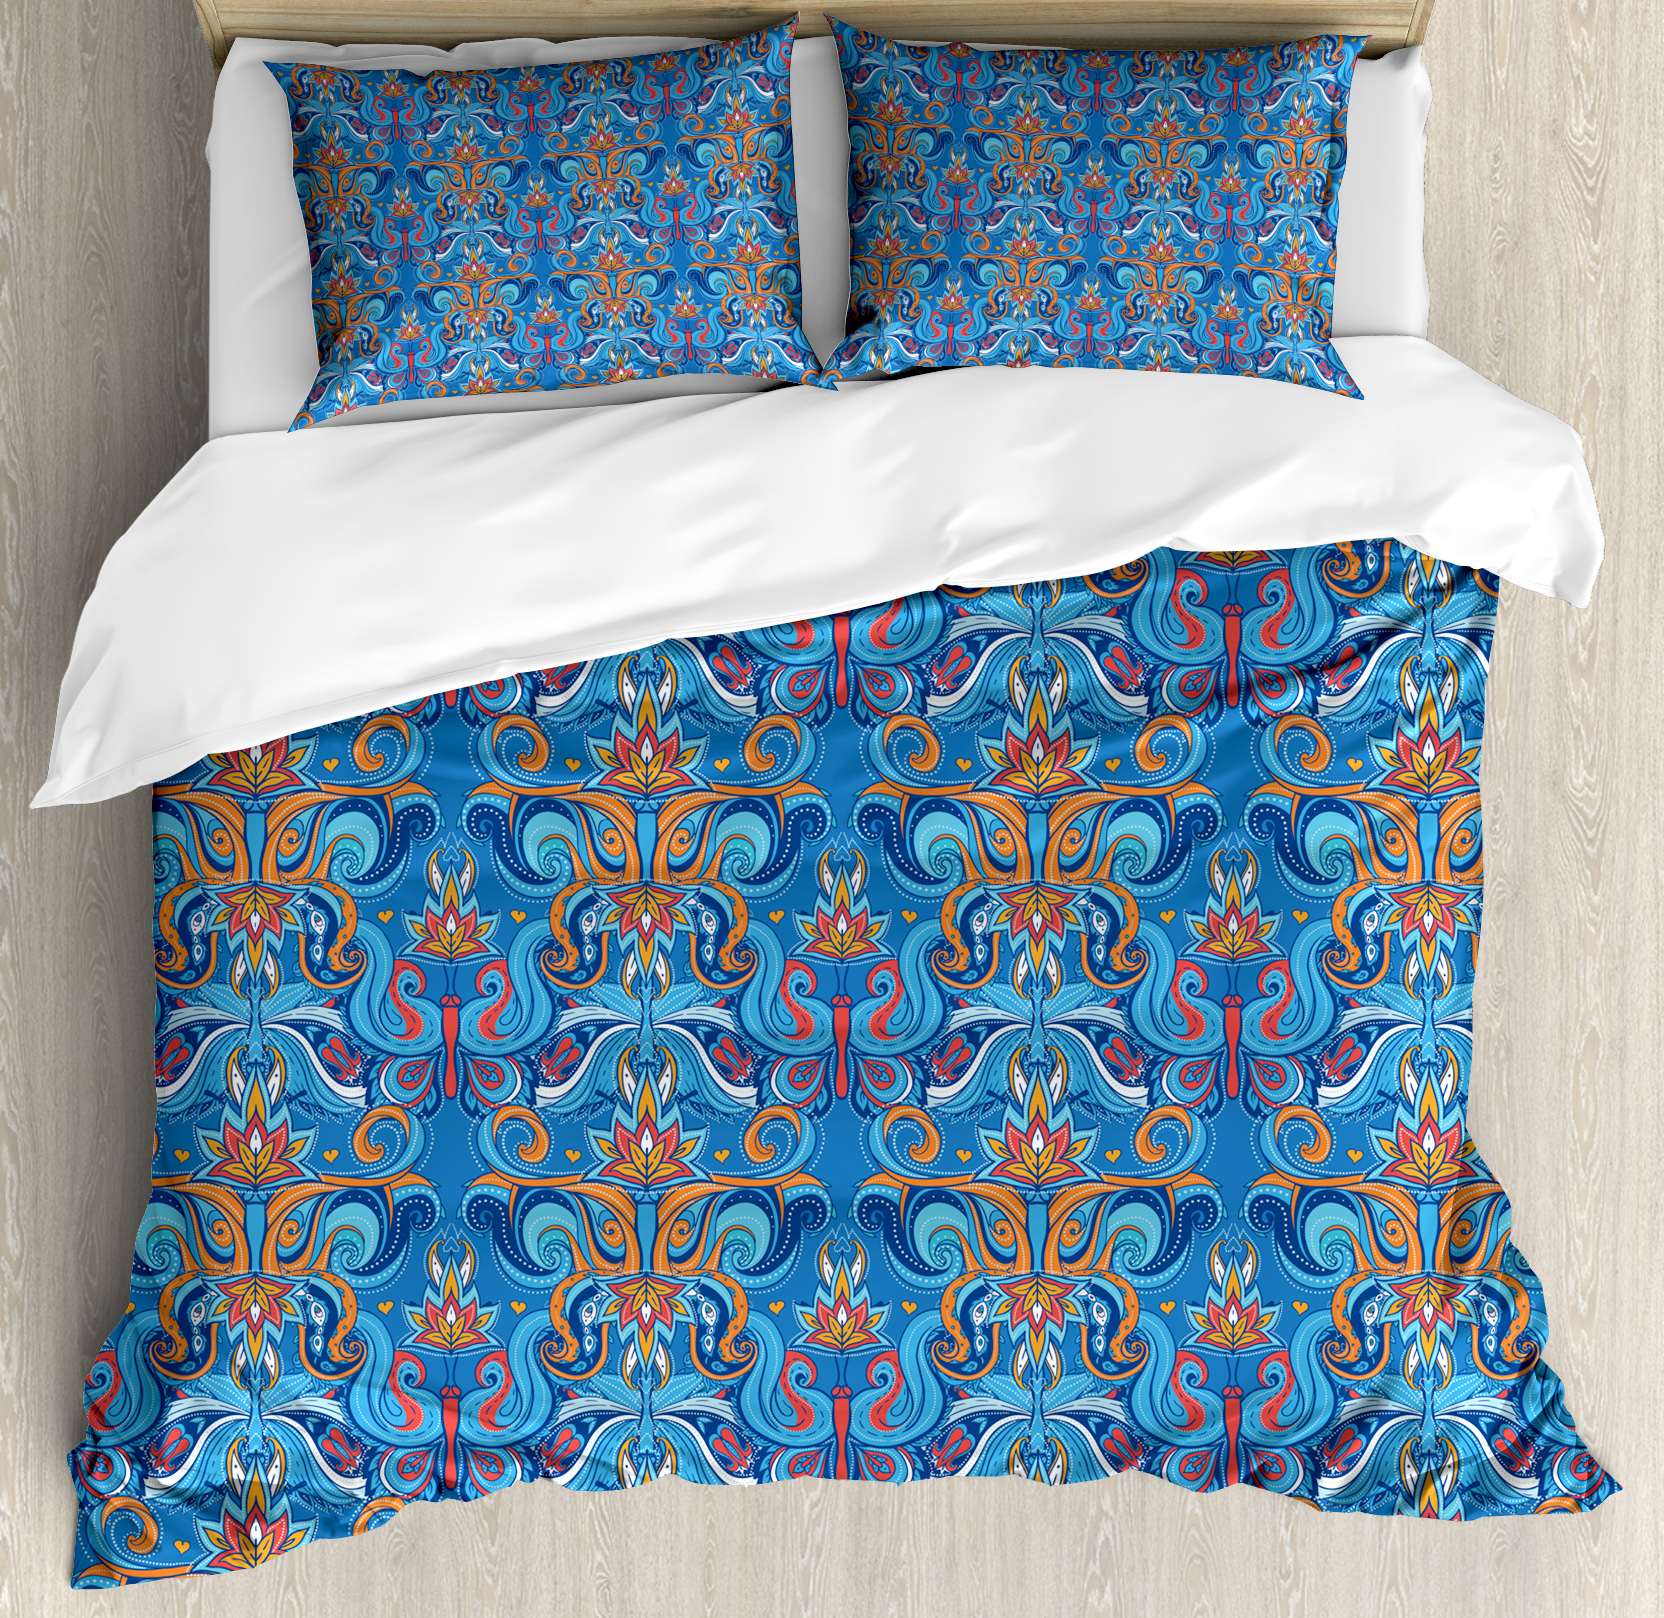 Blue Queen Size Duvet Cover Set, Abstract Floral Pattern with Paisley Influences Ornate Curls Swirled Leaves, Decorative 3 Piece Bedding Set with 2 Pillow Shams, Blue Orange Coral, by Ambesonne